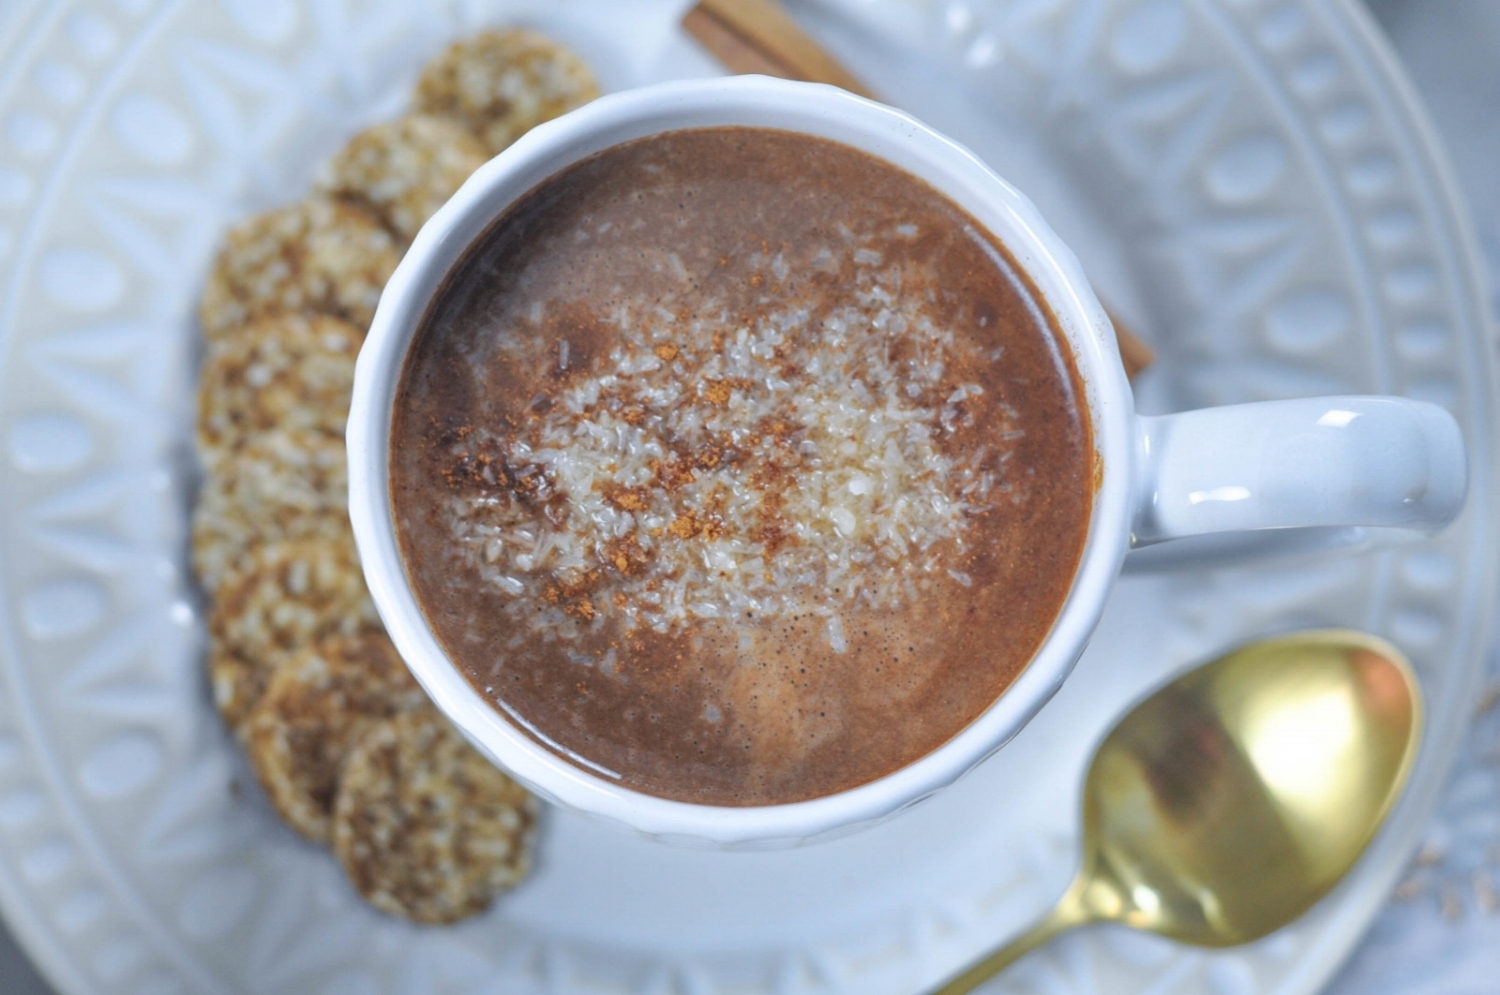 Erin Stanczyk | Lifestyle Design | eat.move.rest. | Two Cold Weather, Holiday Treats: Raw Vegan Porridge + Dairy-Free Hot Cocoa